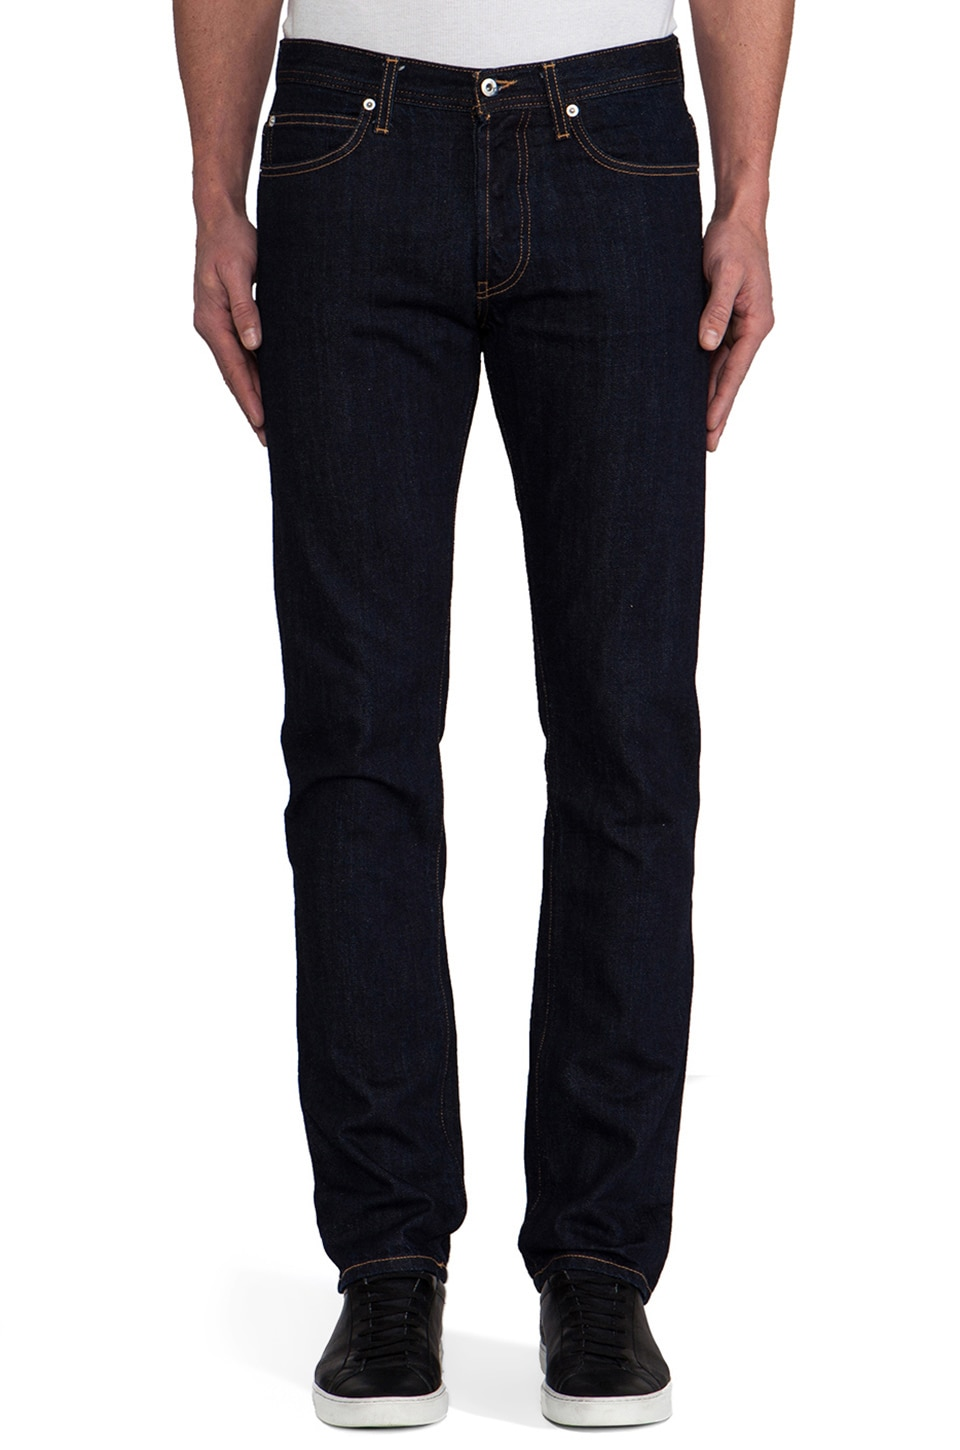 United Stock Dry Goods Slight Contrast Stitch in Indigo